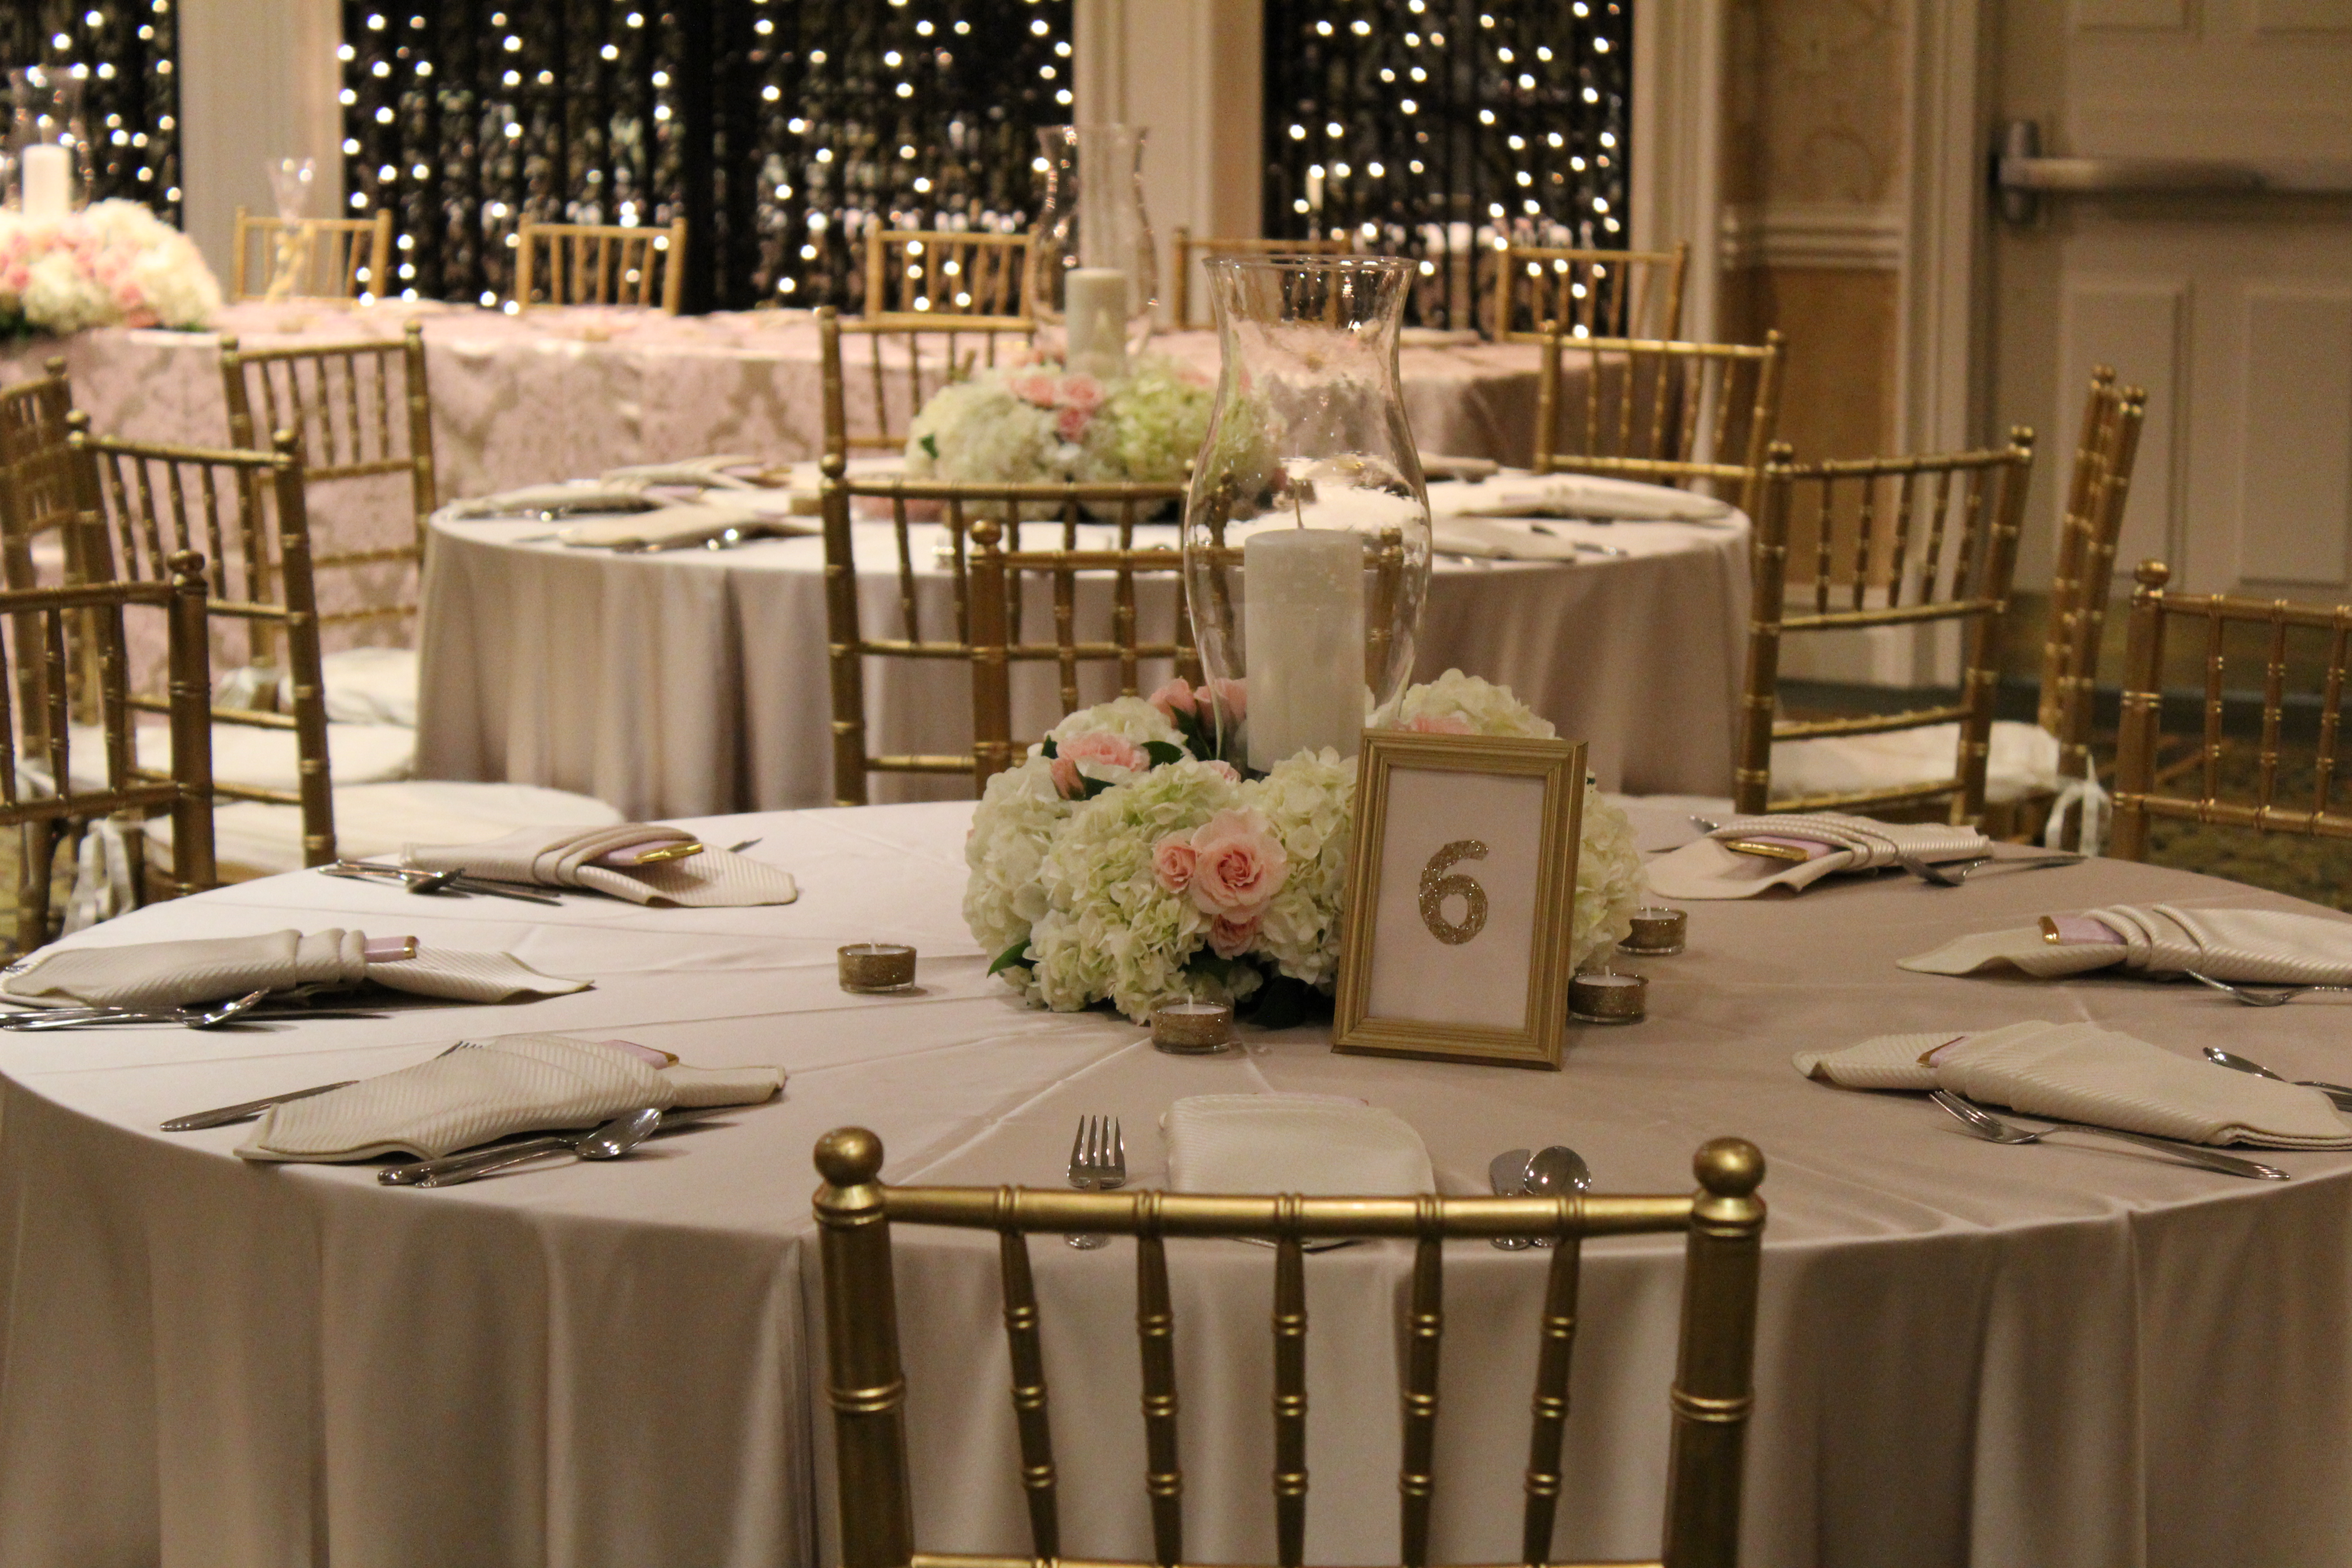 about easy decor of country you decorations wedding will on budget a pinterest in i table truth next seconds tell the reception rustic